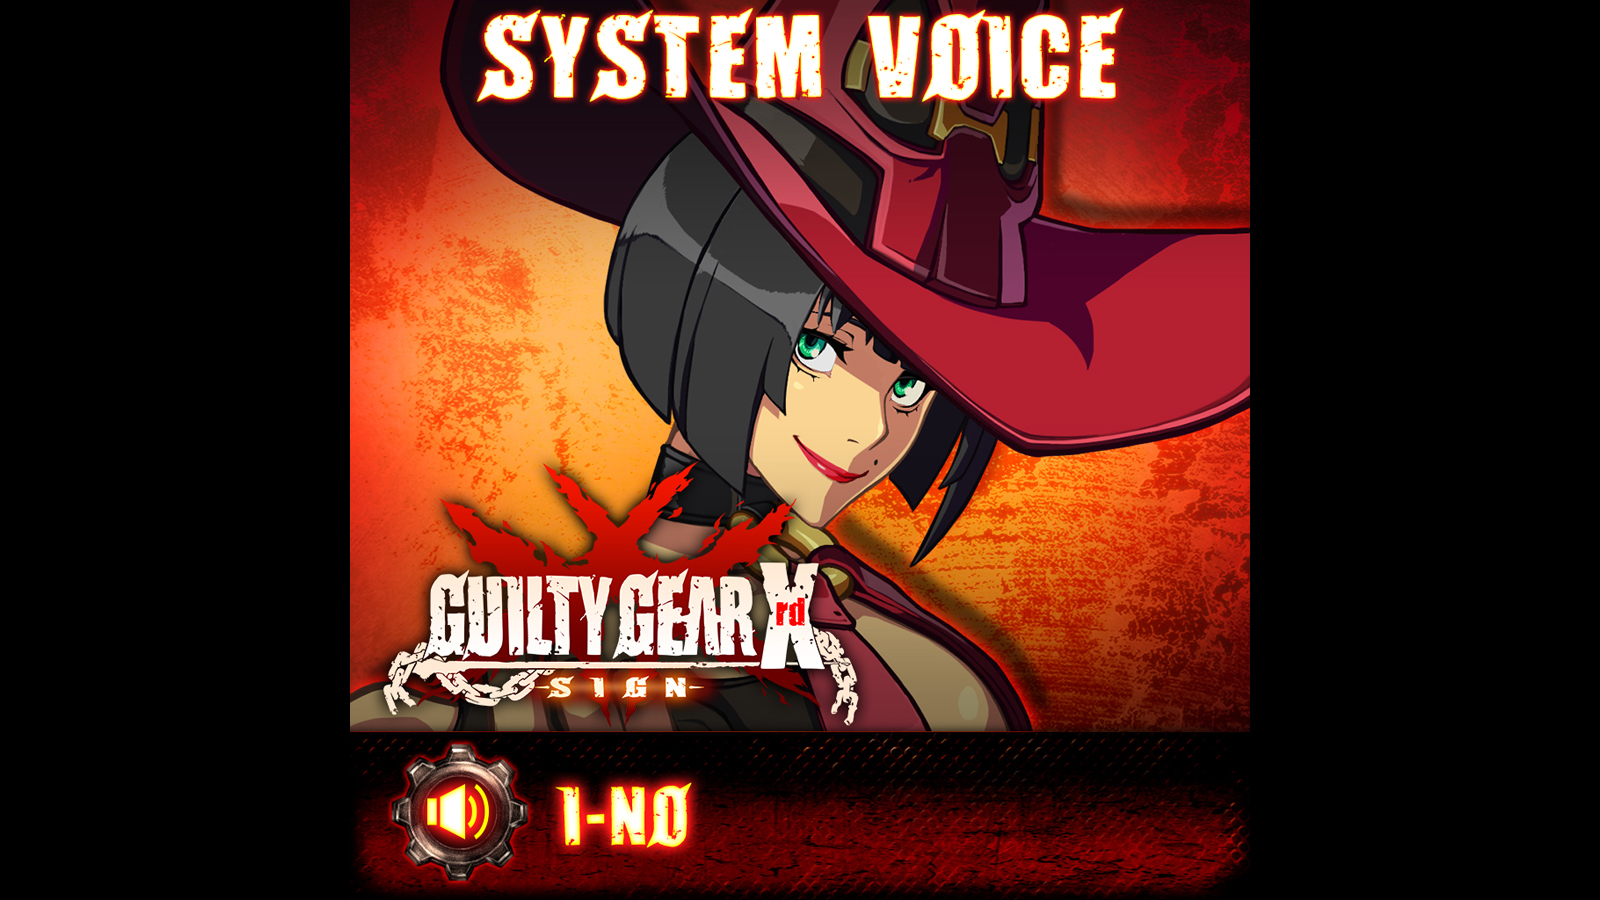 guilty gear xrd i no